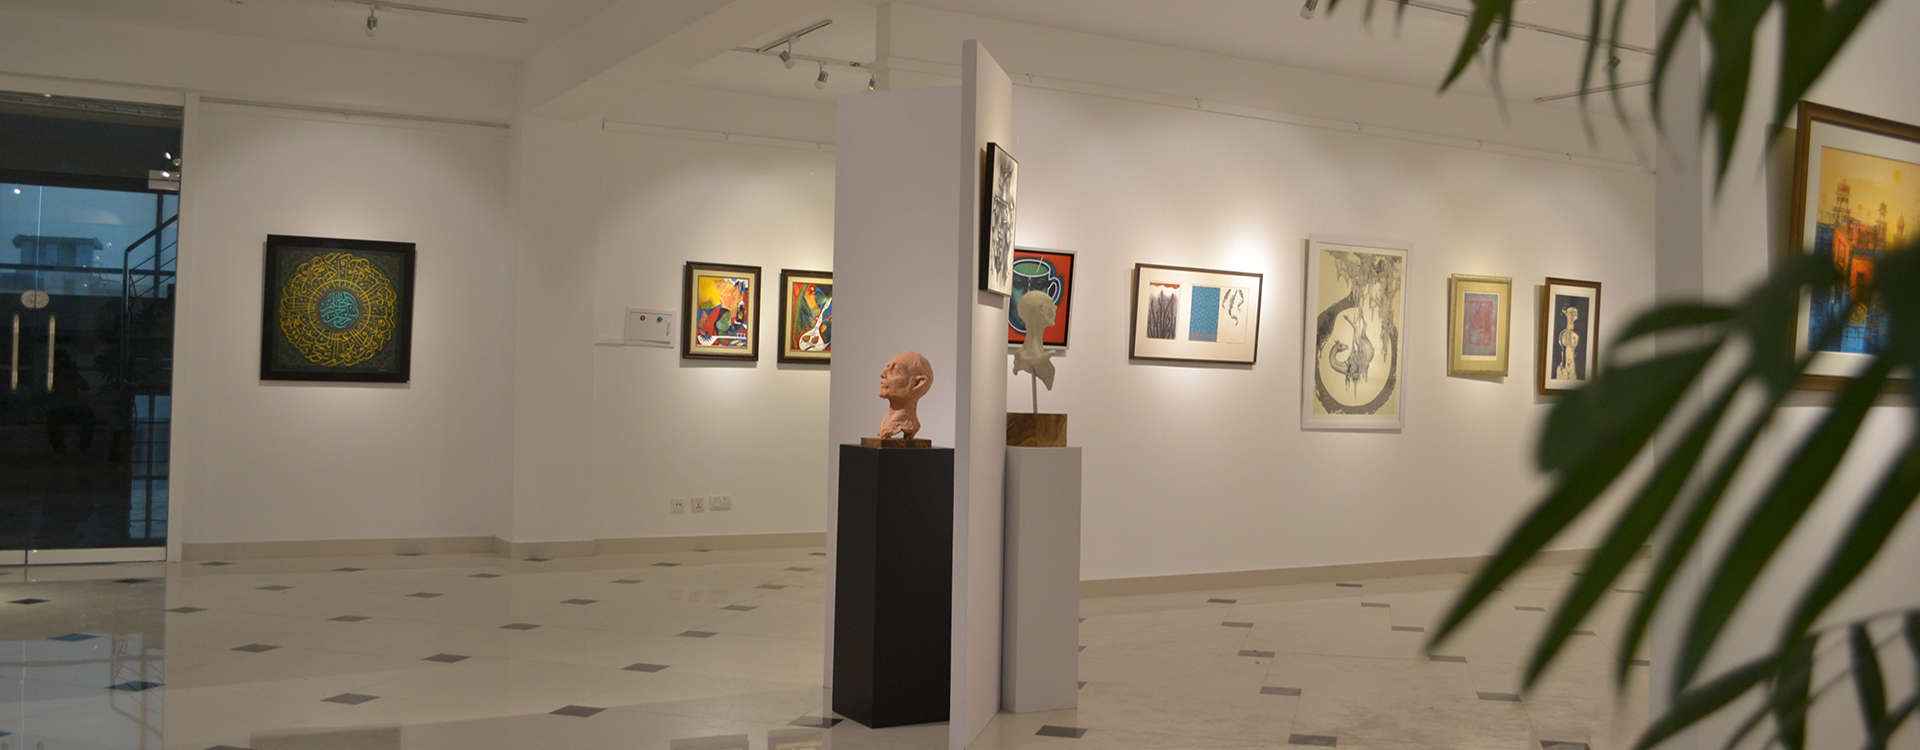 Pakistani Art Gallery 2